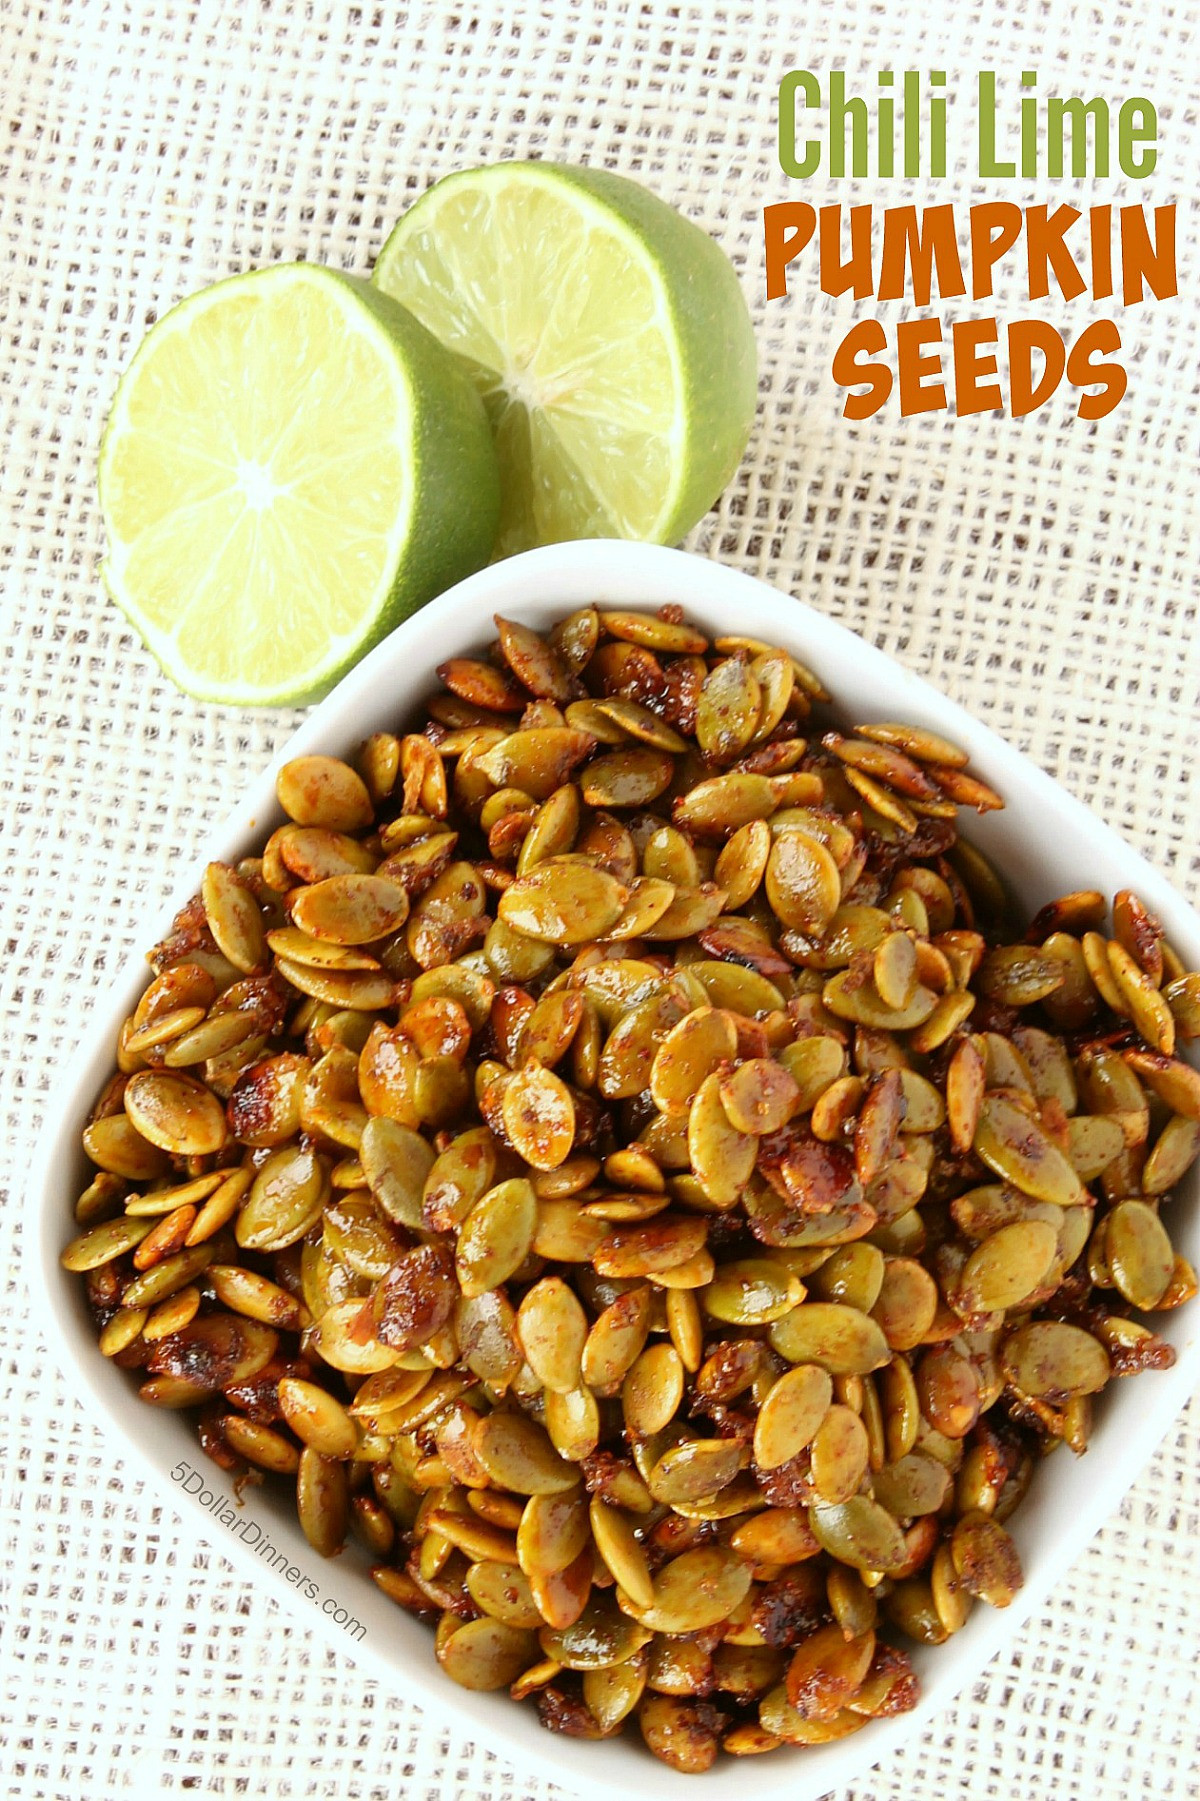 Pumpkin Seeds Healthy  Chili Lime Pumpkin Seeds 31 Days of Healthy Snack Recipes